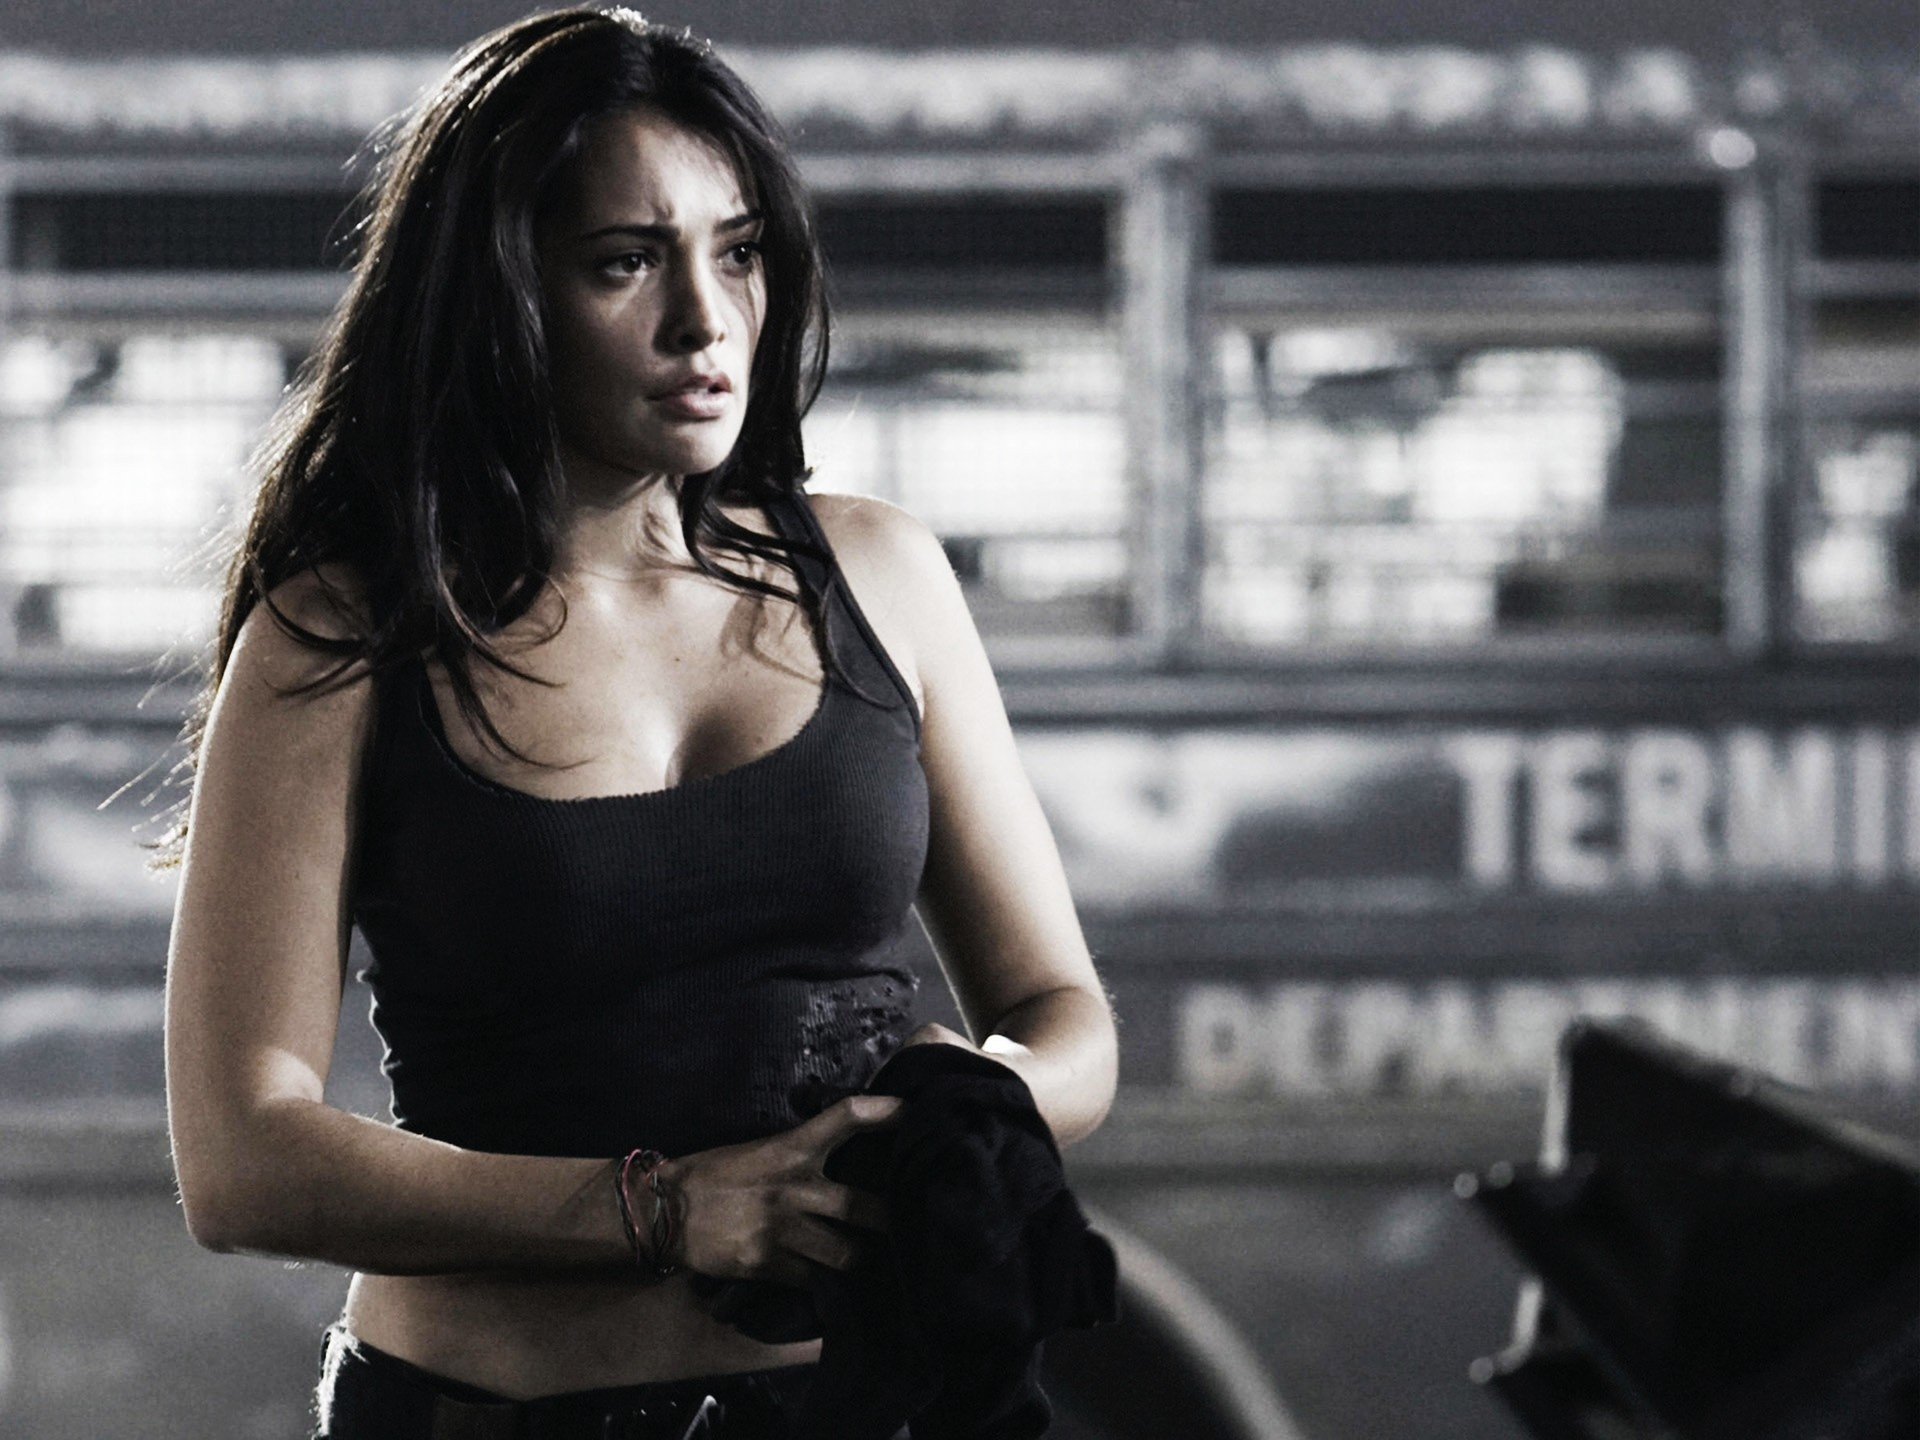 natalie martinez wallpapers hd A3